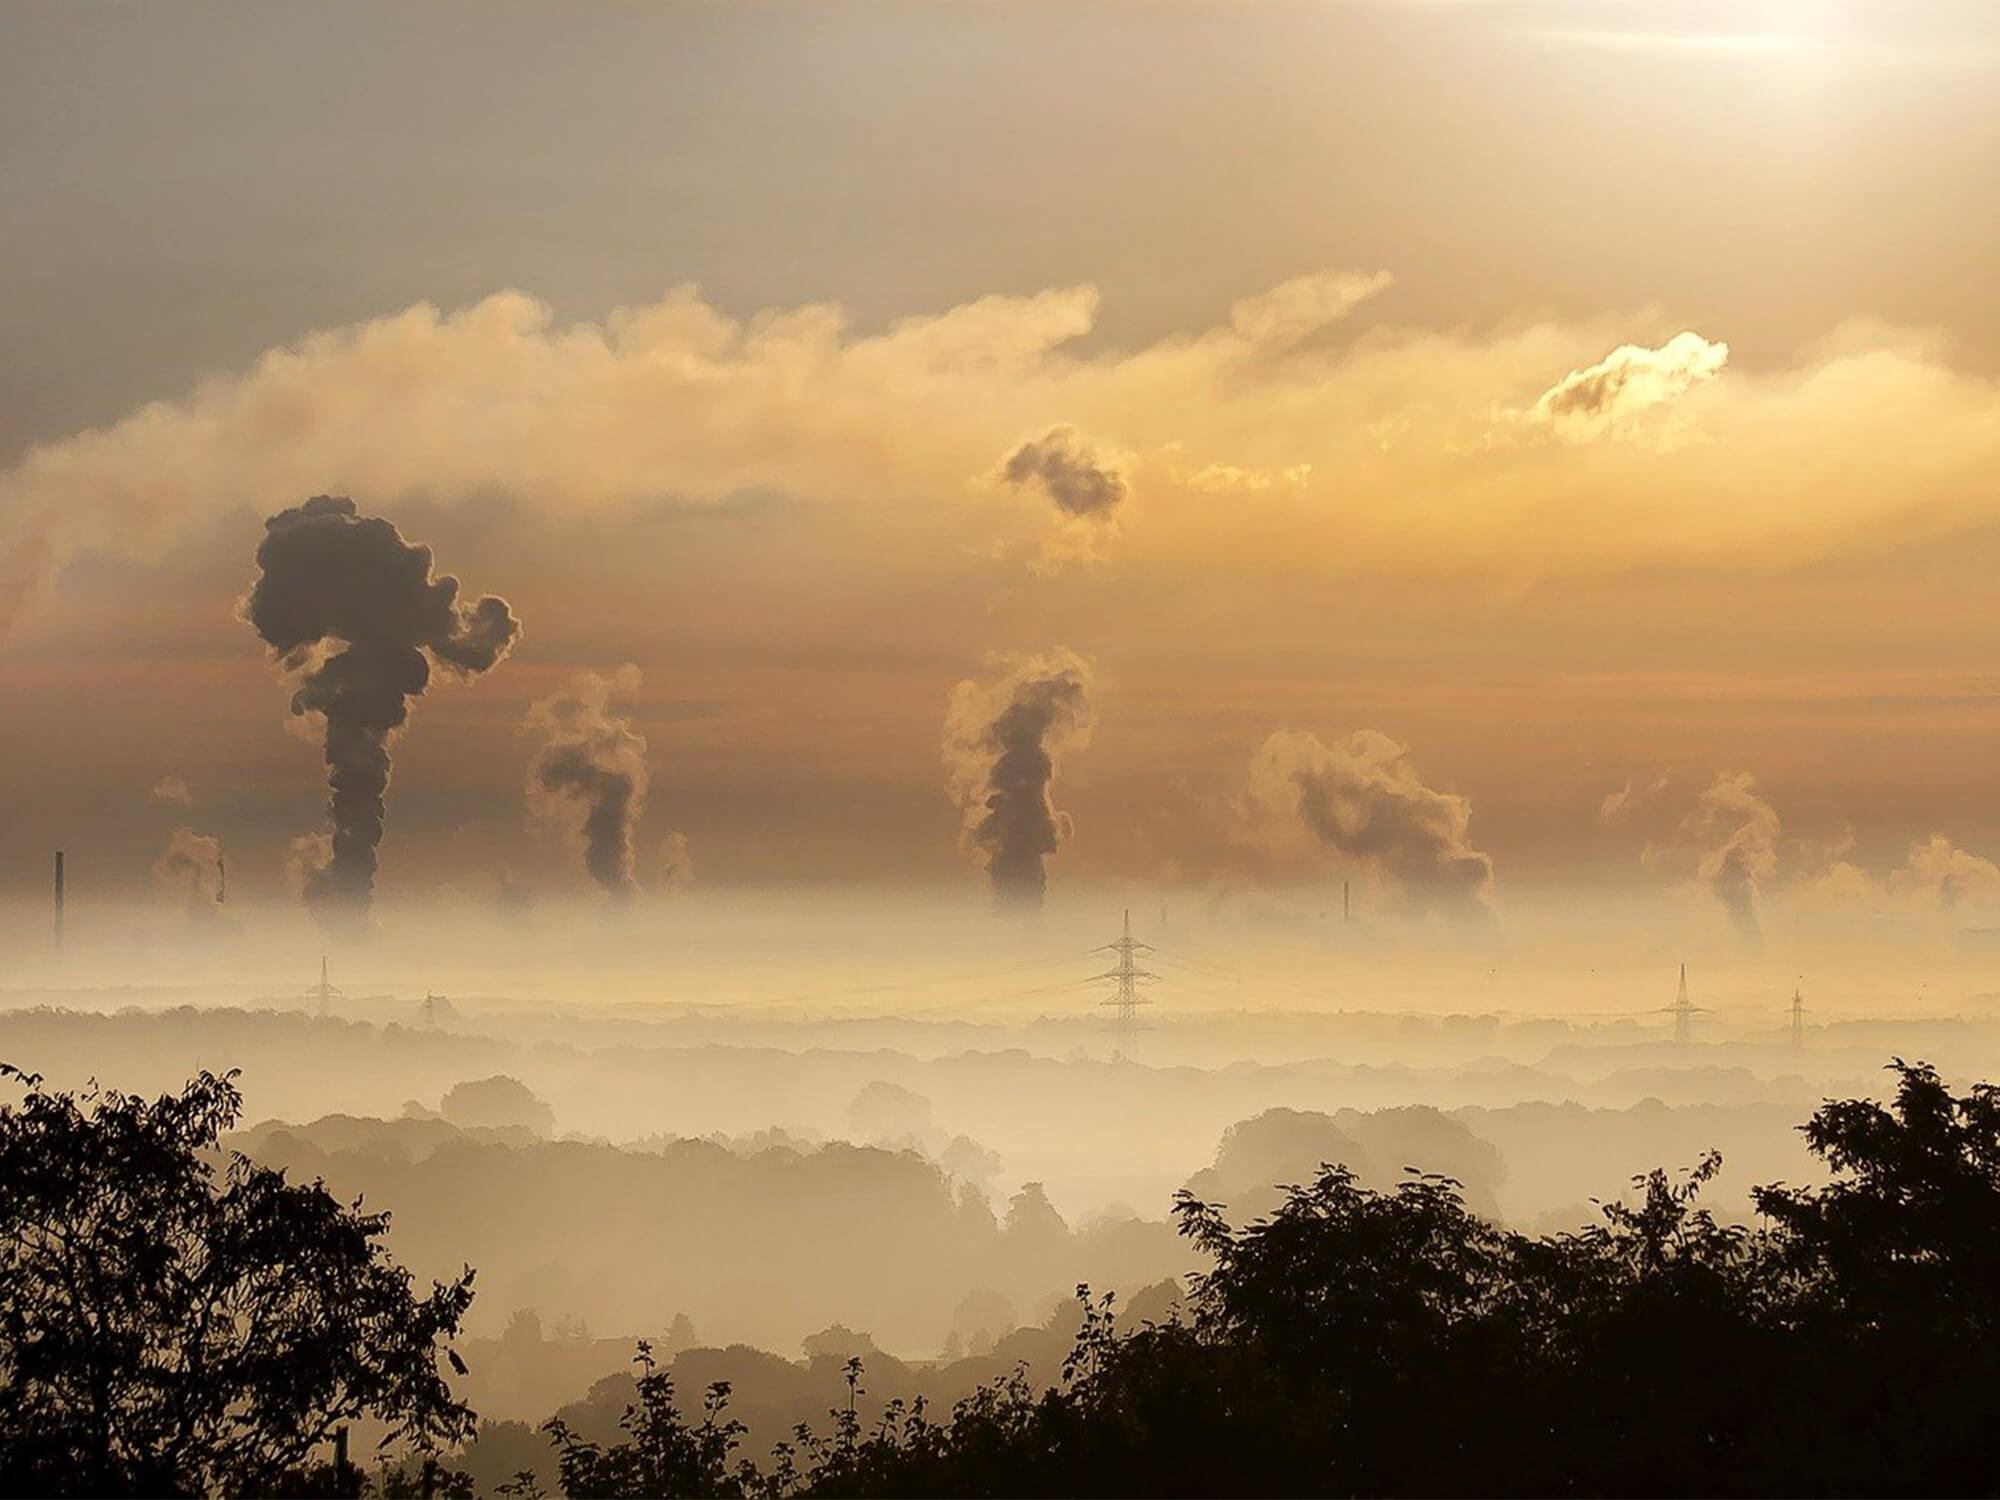 vapour rises from industrial chimneys and a haze covers the landscape